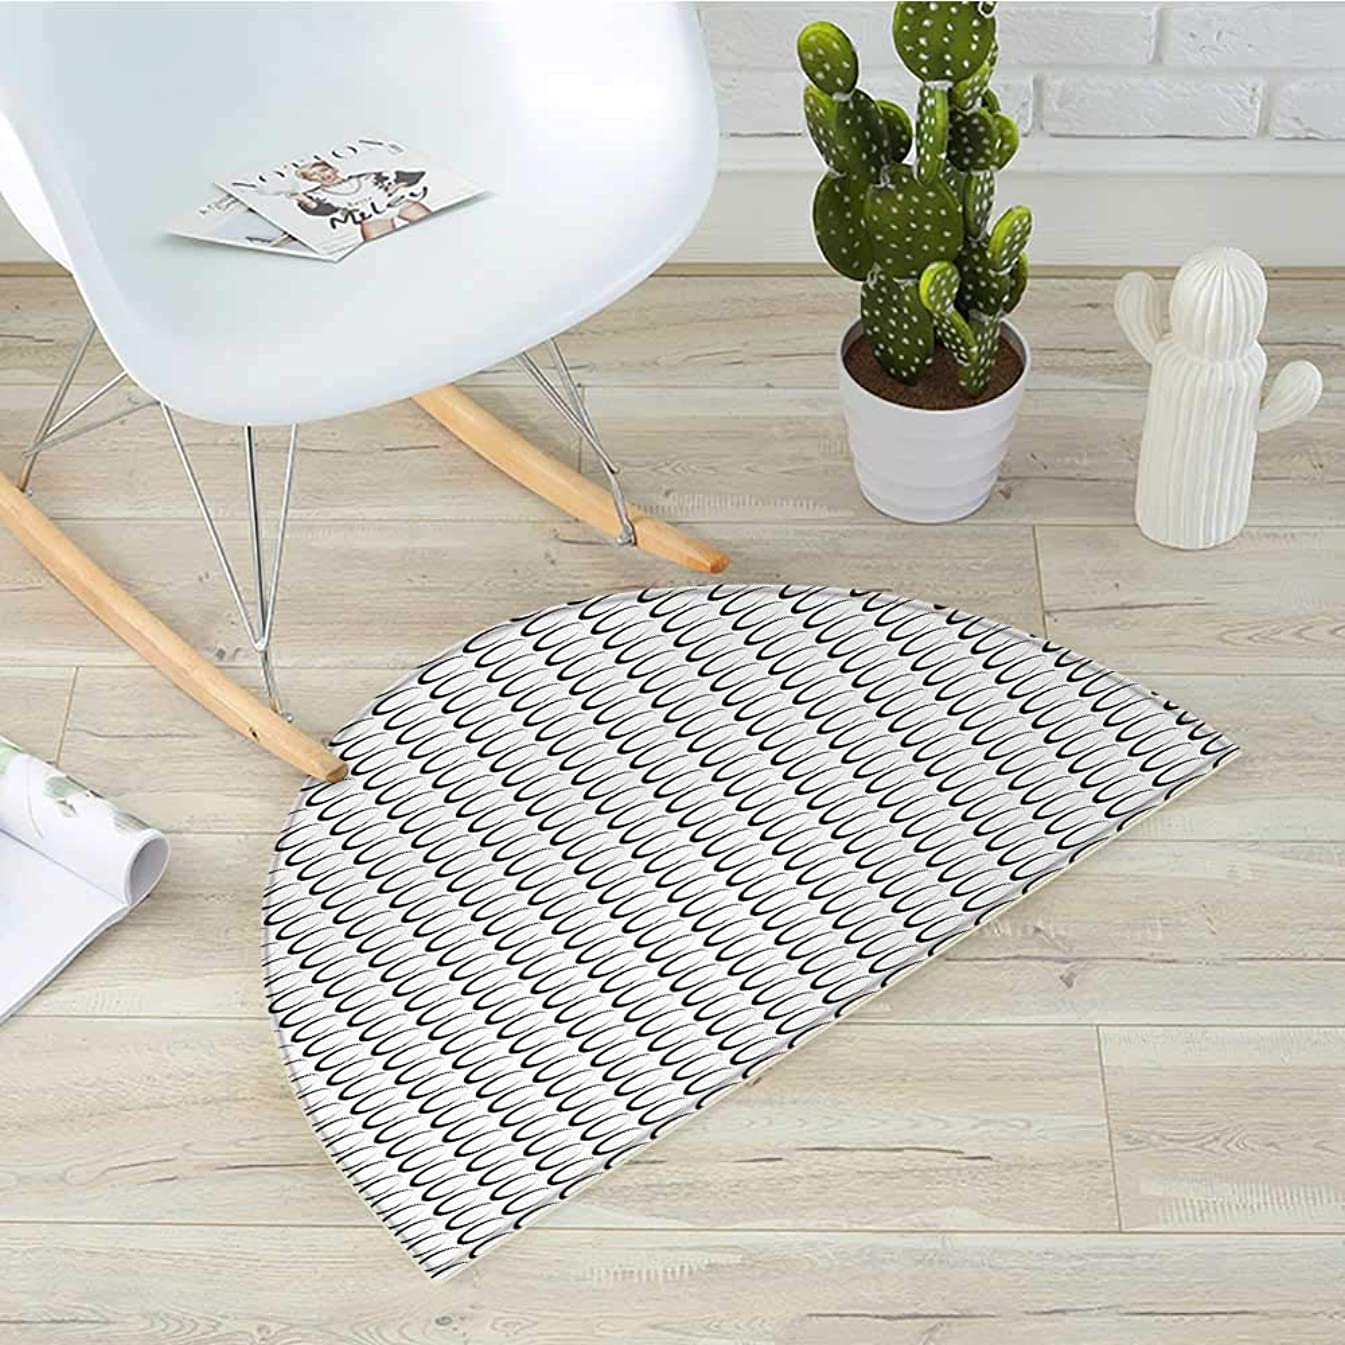 Black and White Semicircular CushionMinimal Pattern with Slanted Oval Shapes Elongated Elliptic Outlines Entry Door Mat H 51.1